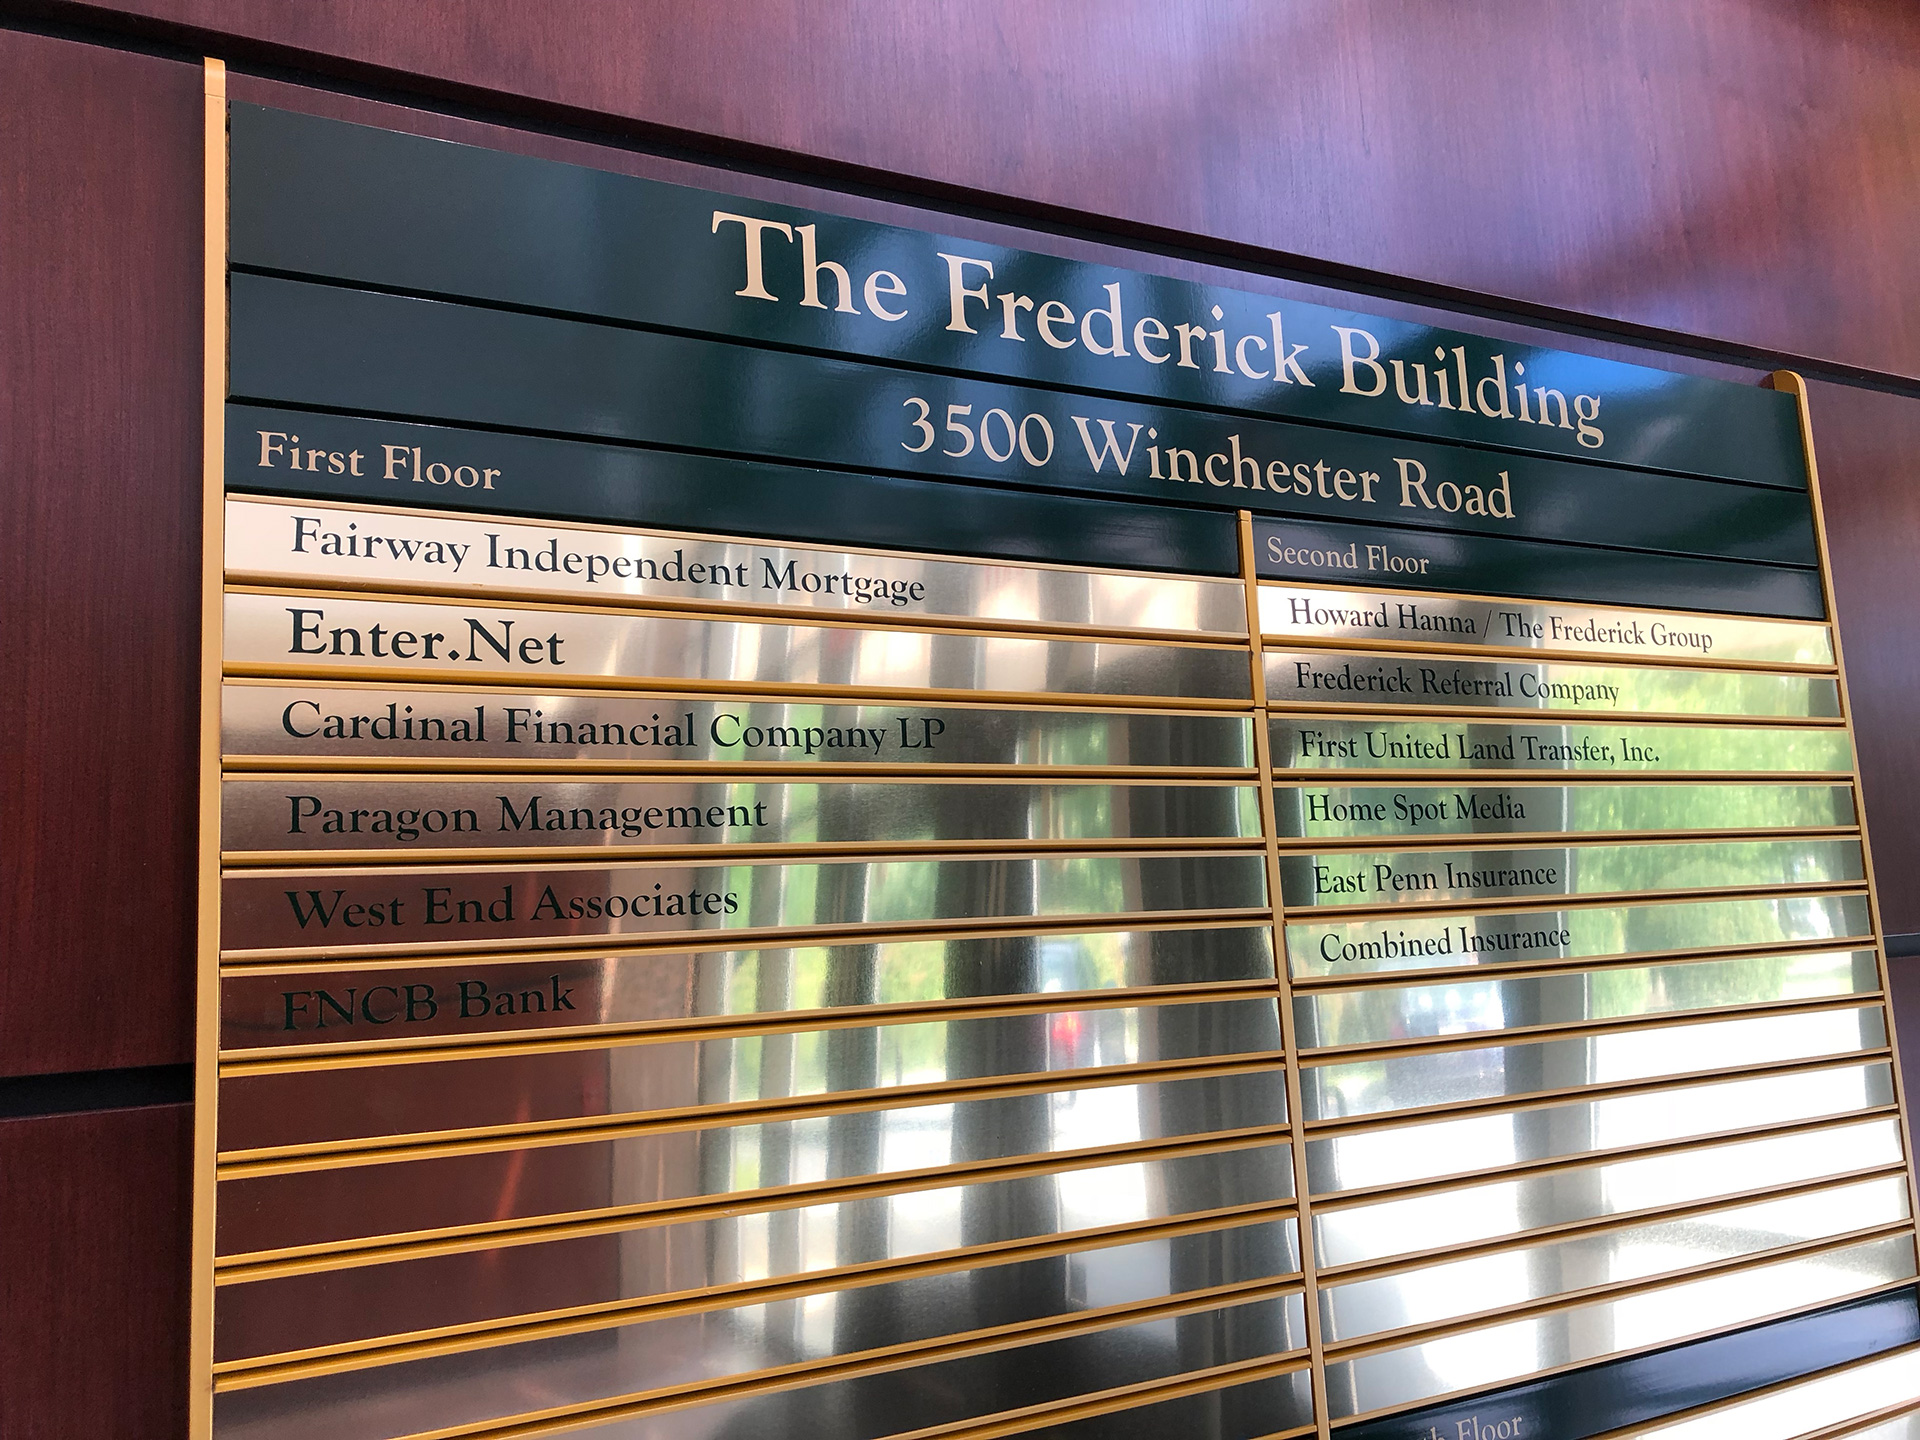 The Frederick Building Lobby Directory, 3500 Winchester Road